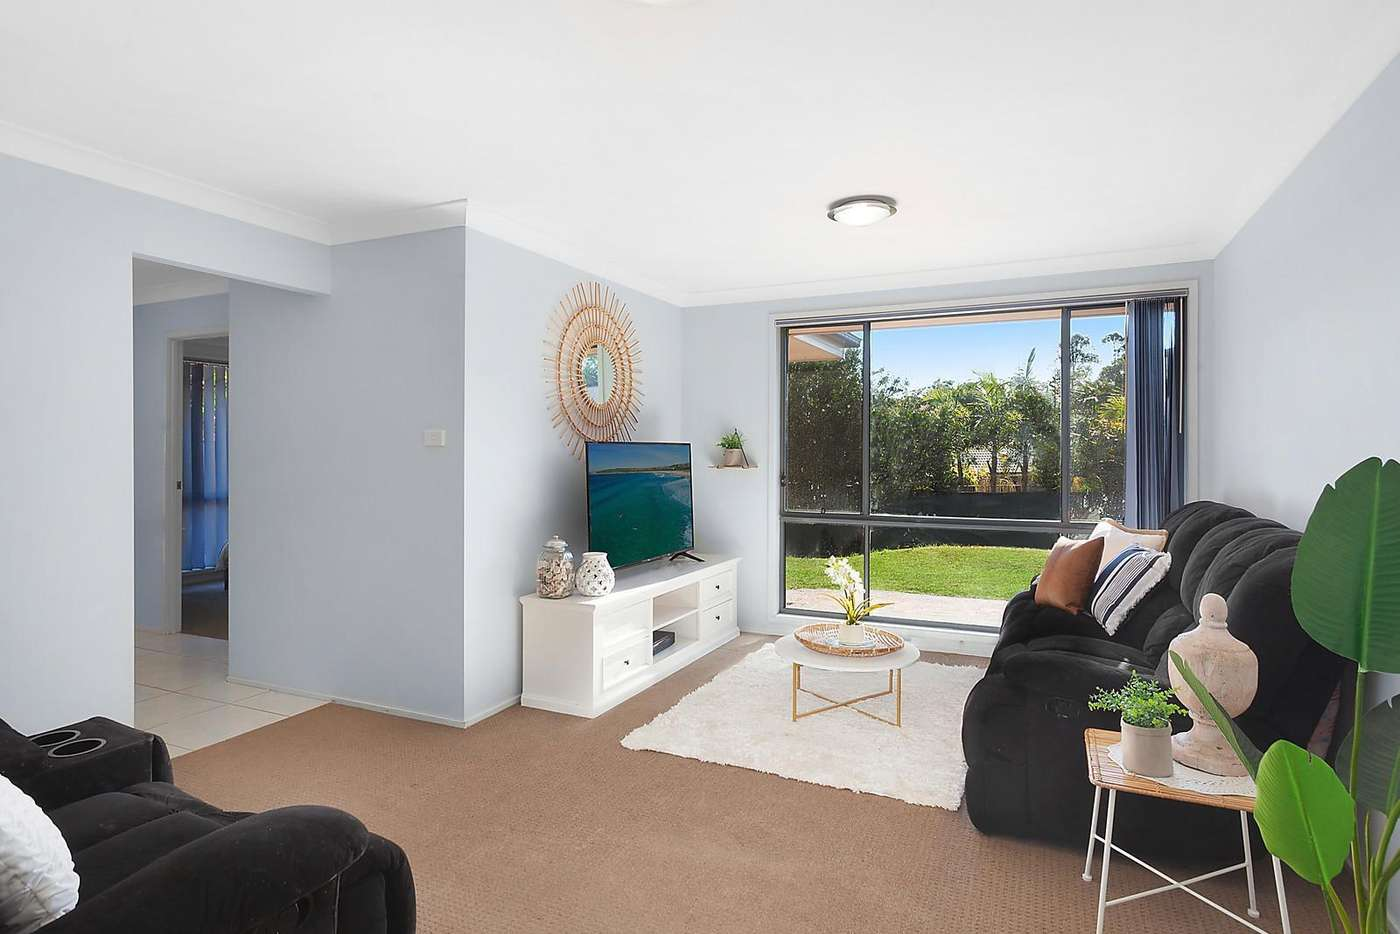 Main view of Homely house listing, 18 Washpool Crescent, Woongarrah NSW 2259